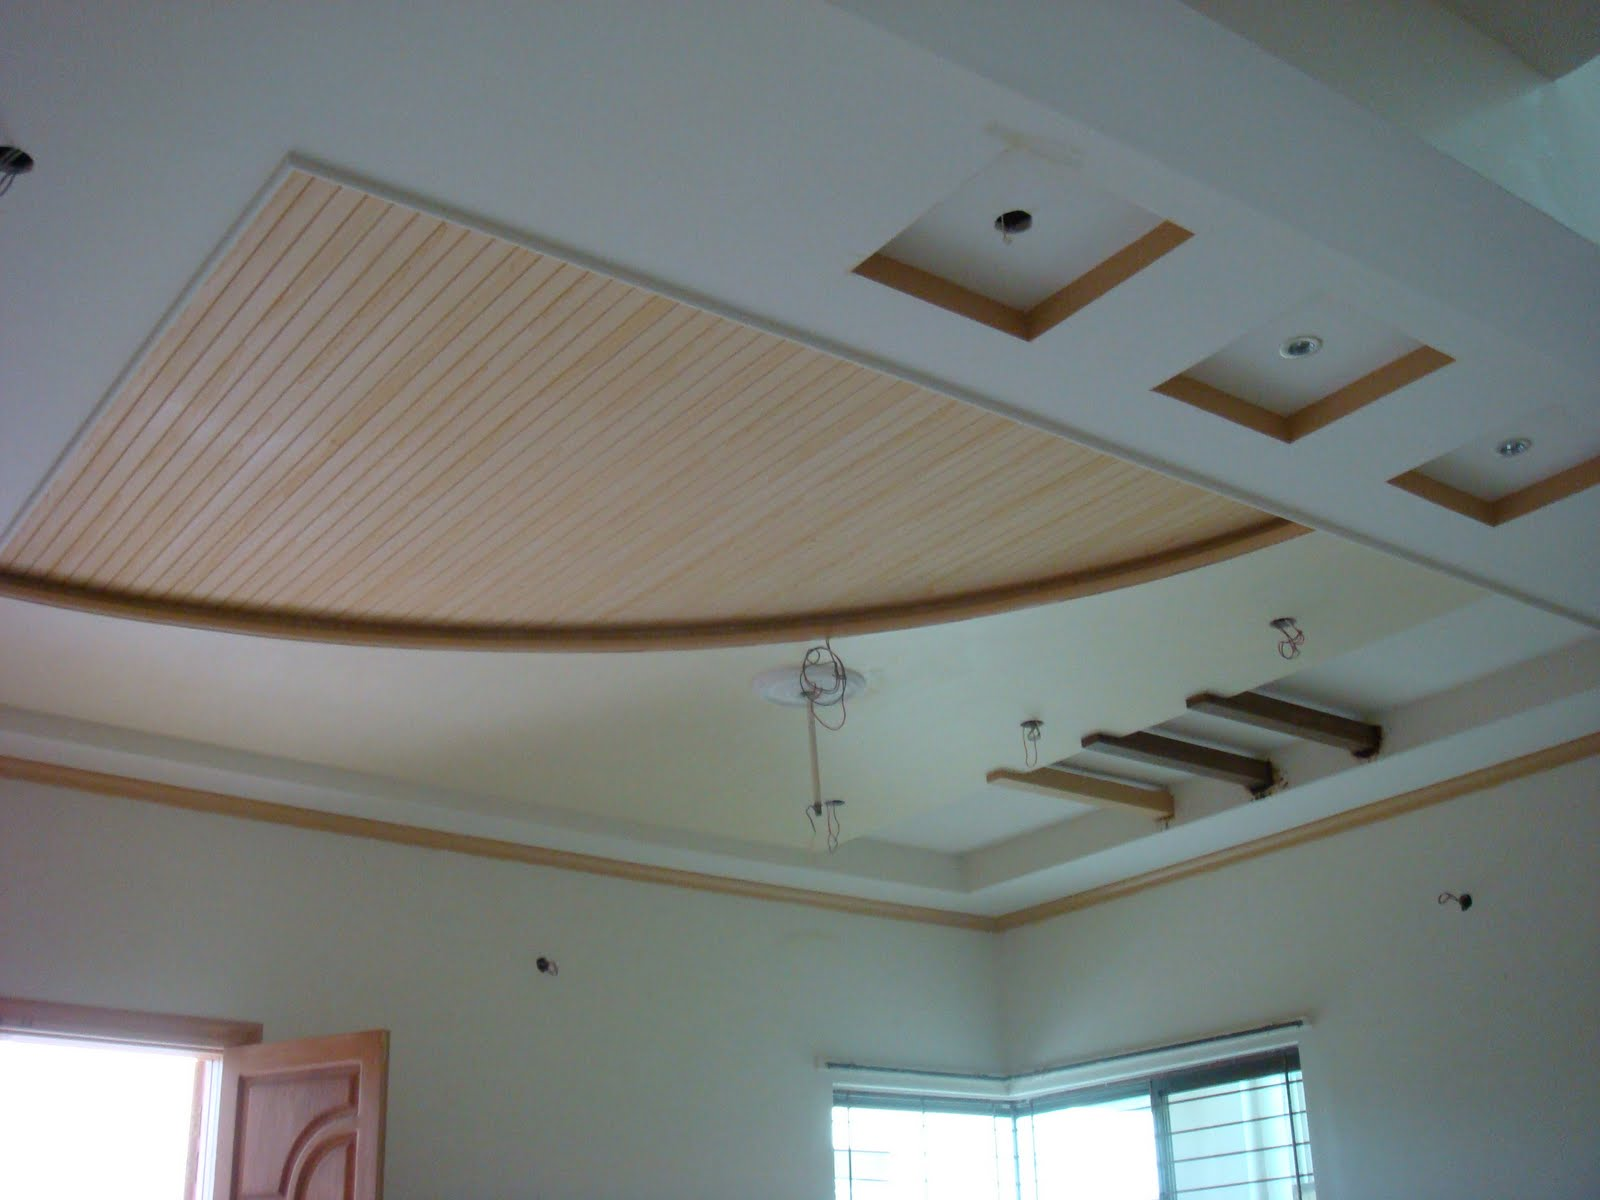 Designs Remodeling: King2011 جیوے جیوے پاکستان: Design For-Ceiling